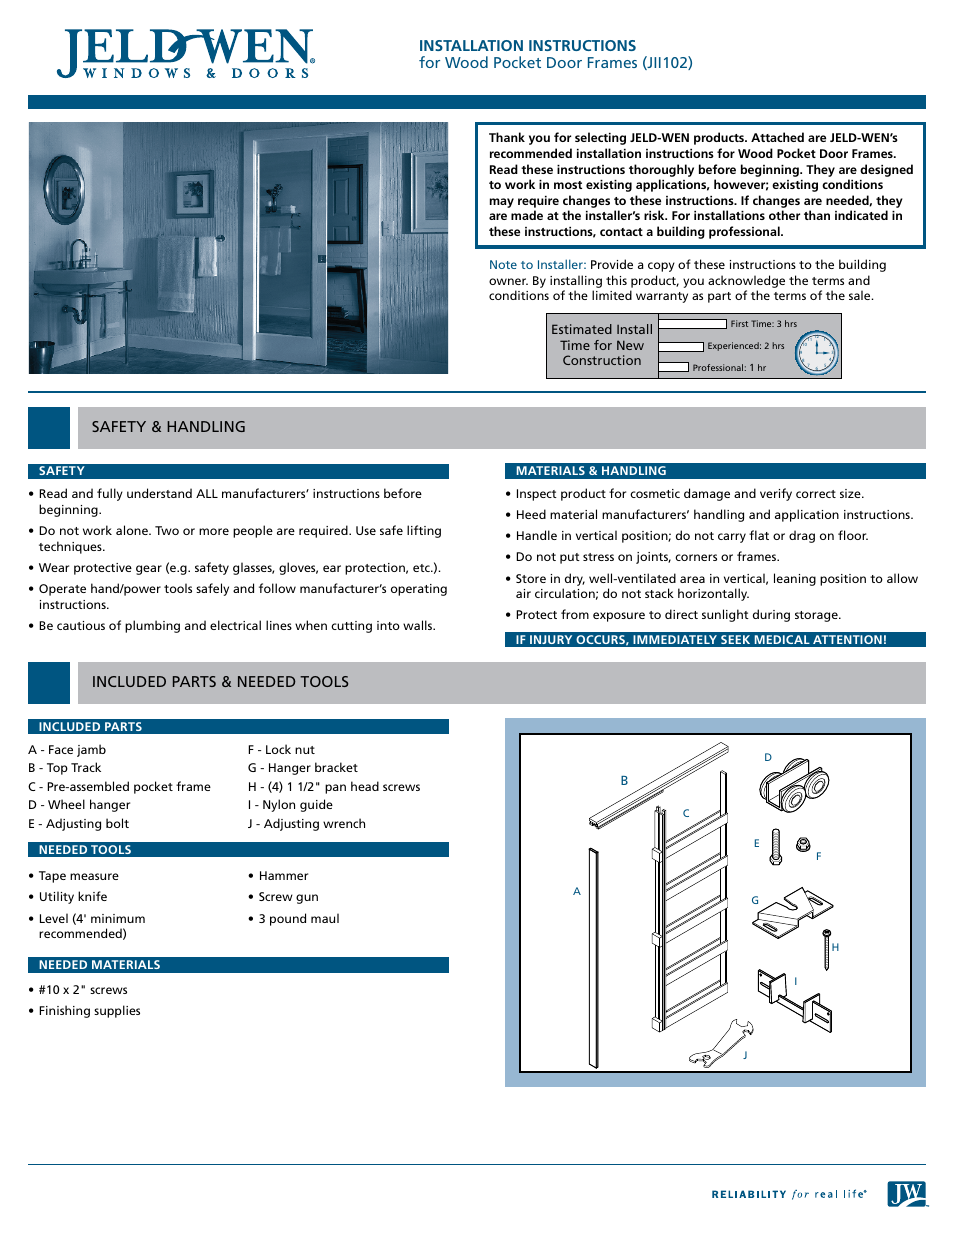 Jeld Wen Jii102 Wood Pocket Door Frames User Manual 2 Pages